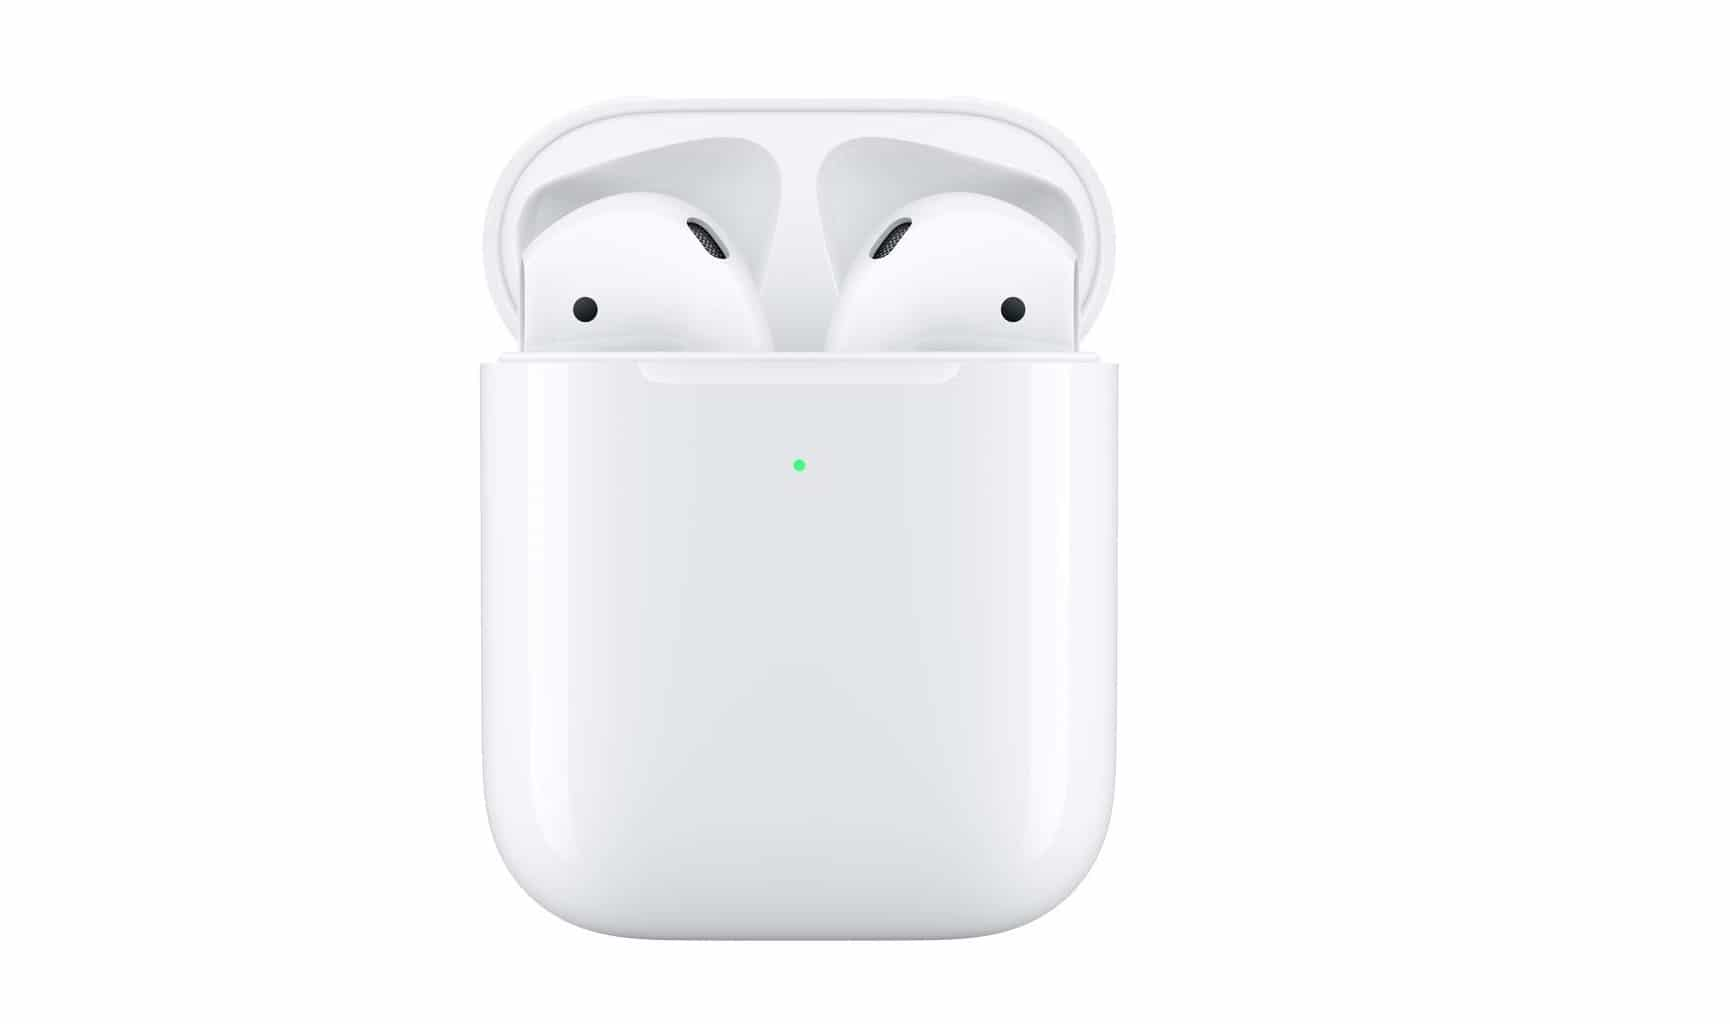 Apple launches second-generation AirPods with various new features